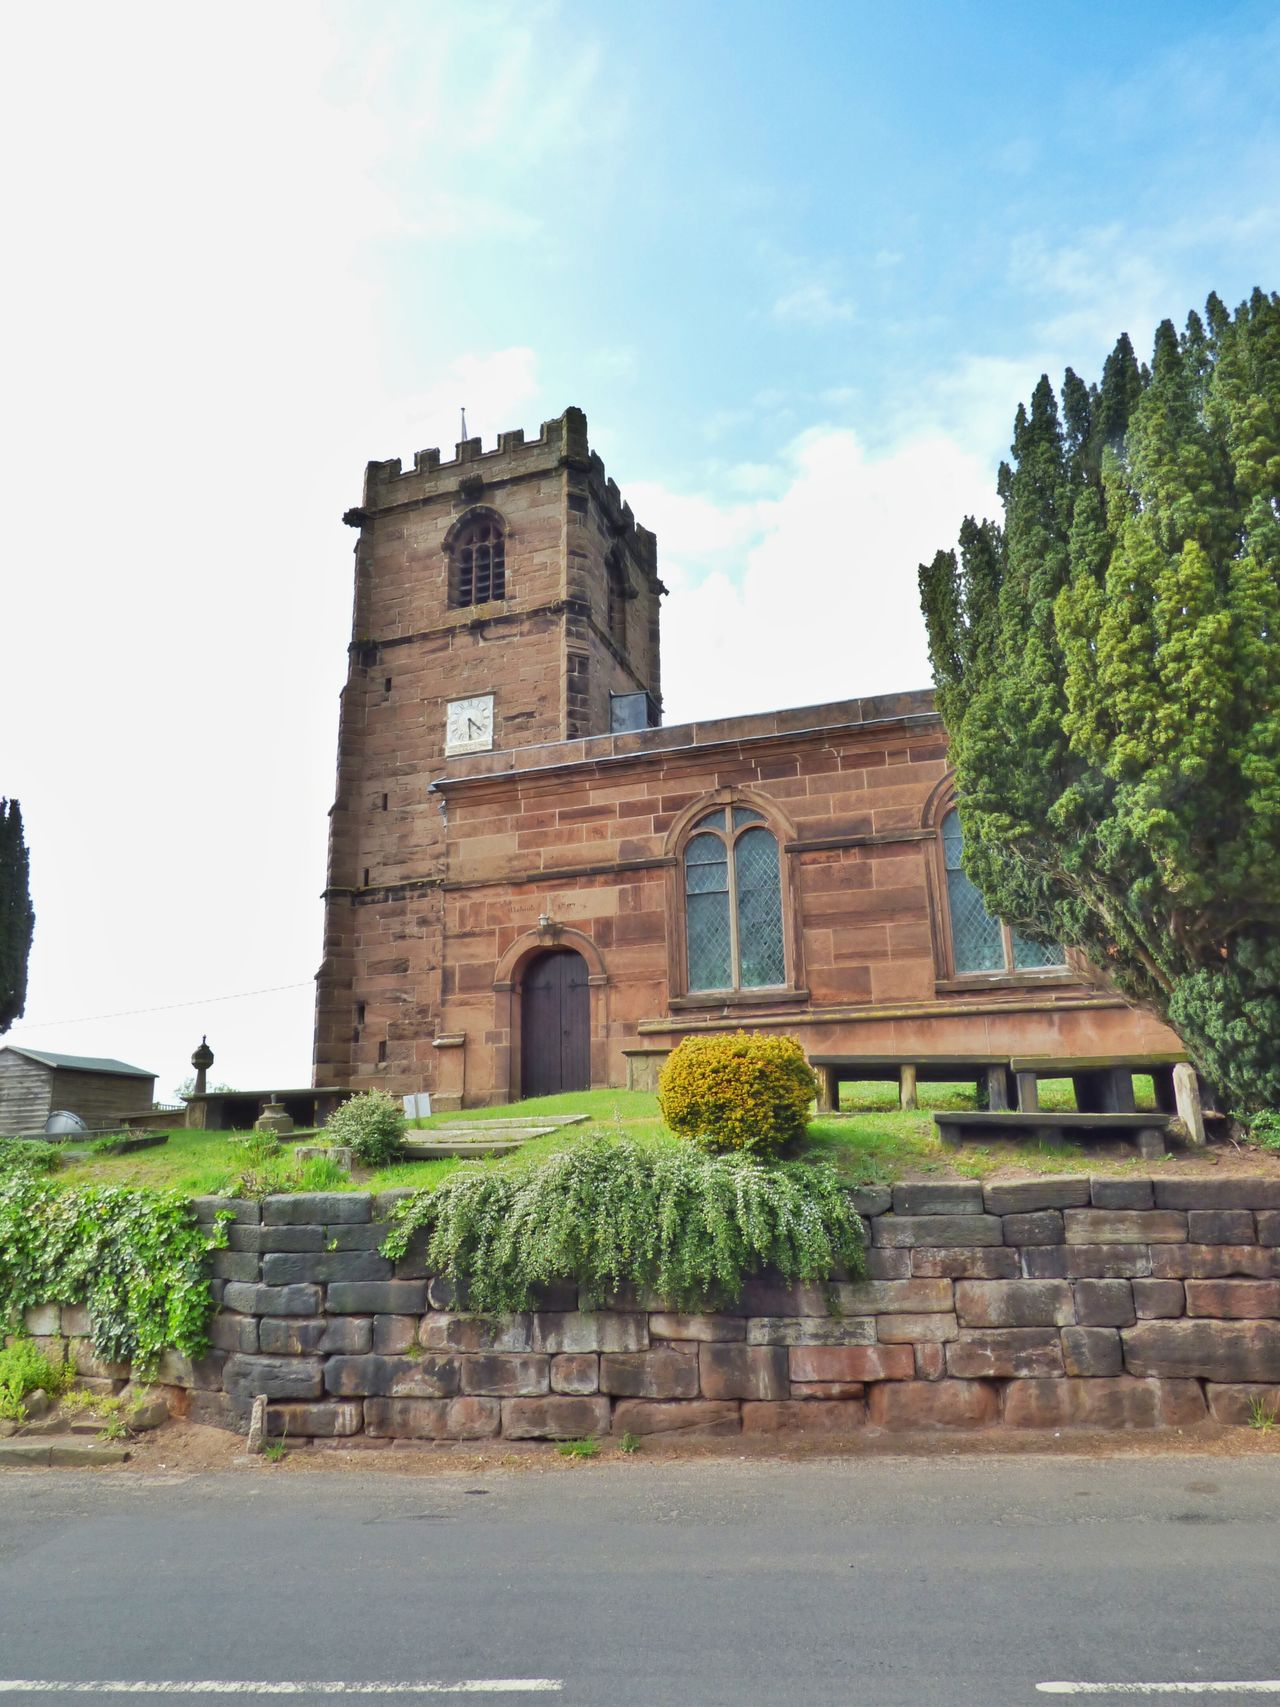 Little Budworth Church // Architecture Building Exterior Built Structure Cheshire Cloud Cloud - Sky Day Exterior Façade Green Color Growth Historic History Little Budworth Low Angle View Mike Whitby Nature No People Outdoors Plant Sky Stock Image Stock Photo The Past Tree